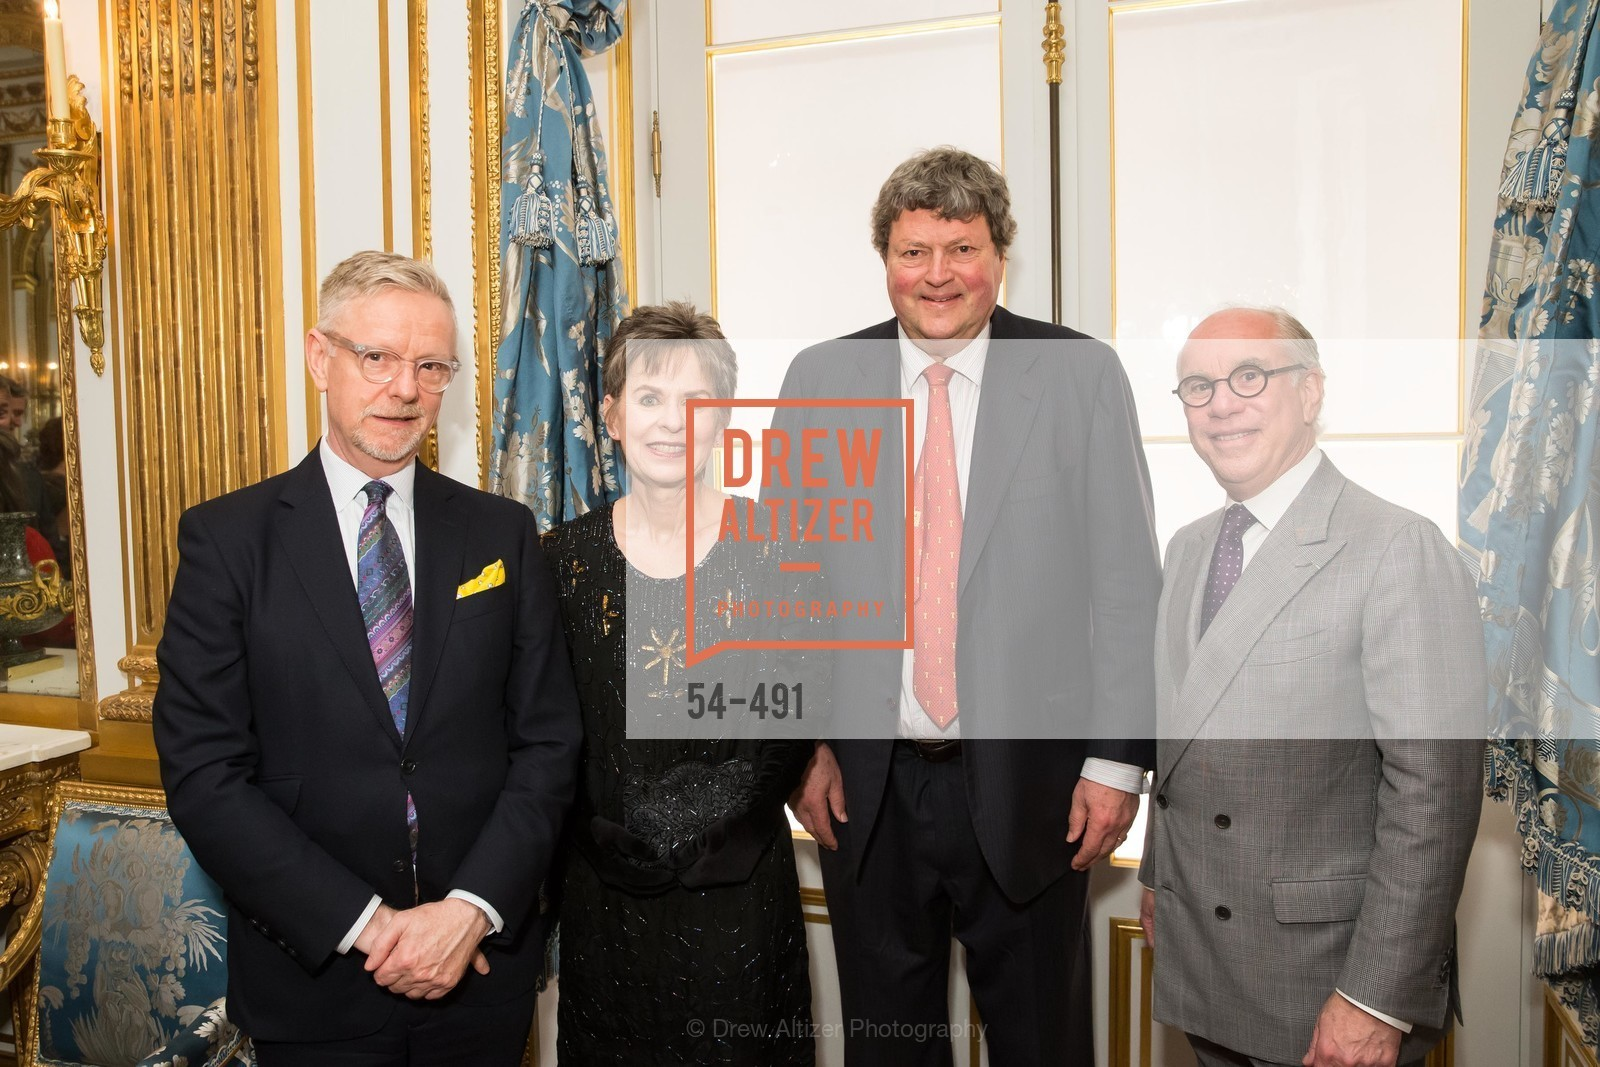 Martin Chapman, Deborah Bigelow, John Gunn, Andrew Skurman, The Salon Doré from the Hôtel de La Trémoille Donor Opening, US. Legion of Honor, April 2nd, 2014,Drew Altizer, Drew Altizer Photography, full-service agency, private events, San Francisco photographer, photographer california